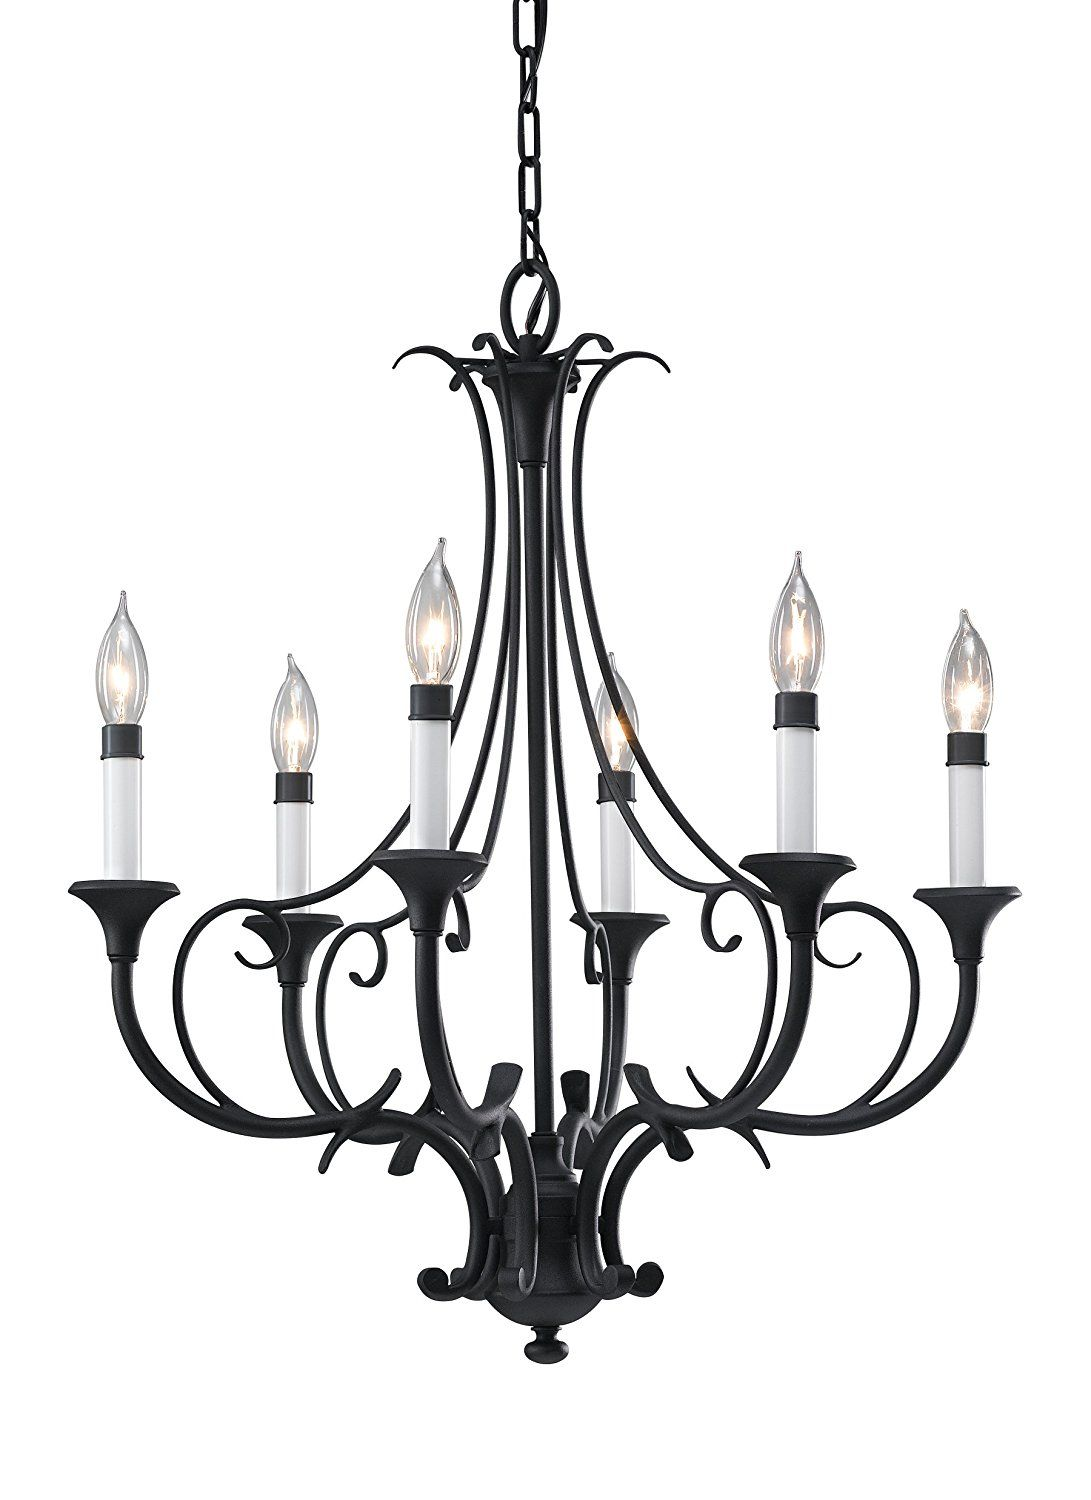 Feiss F2533 6bk 6 Bulb Chandelier Black Finish Lightfixtures Lighting Decor Lights Remodeli Black Chandelier Traditional Chandelier Chandelier Lighting